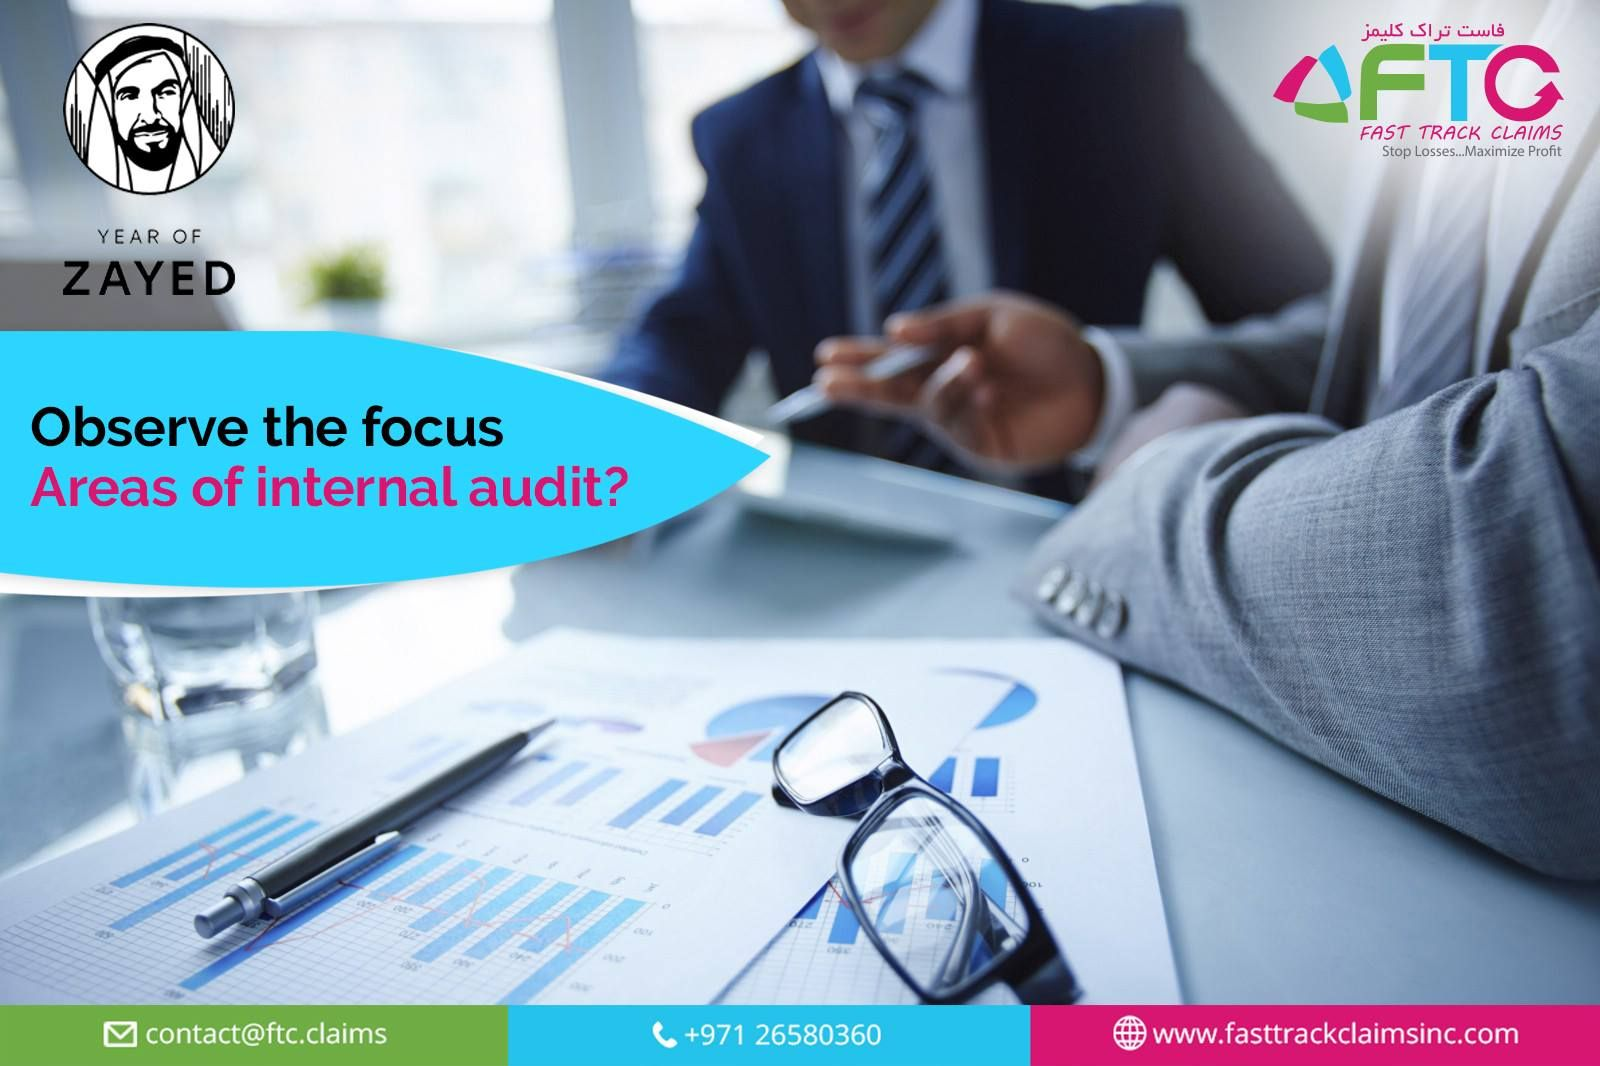 The Focus Areas Of Internal Audit Are As Follows